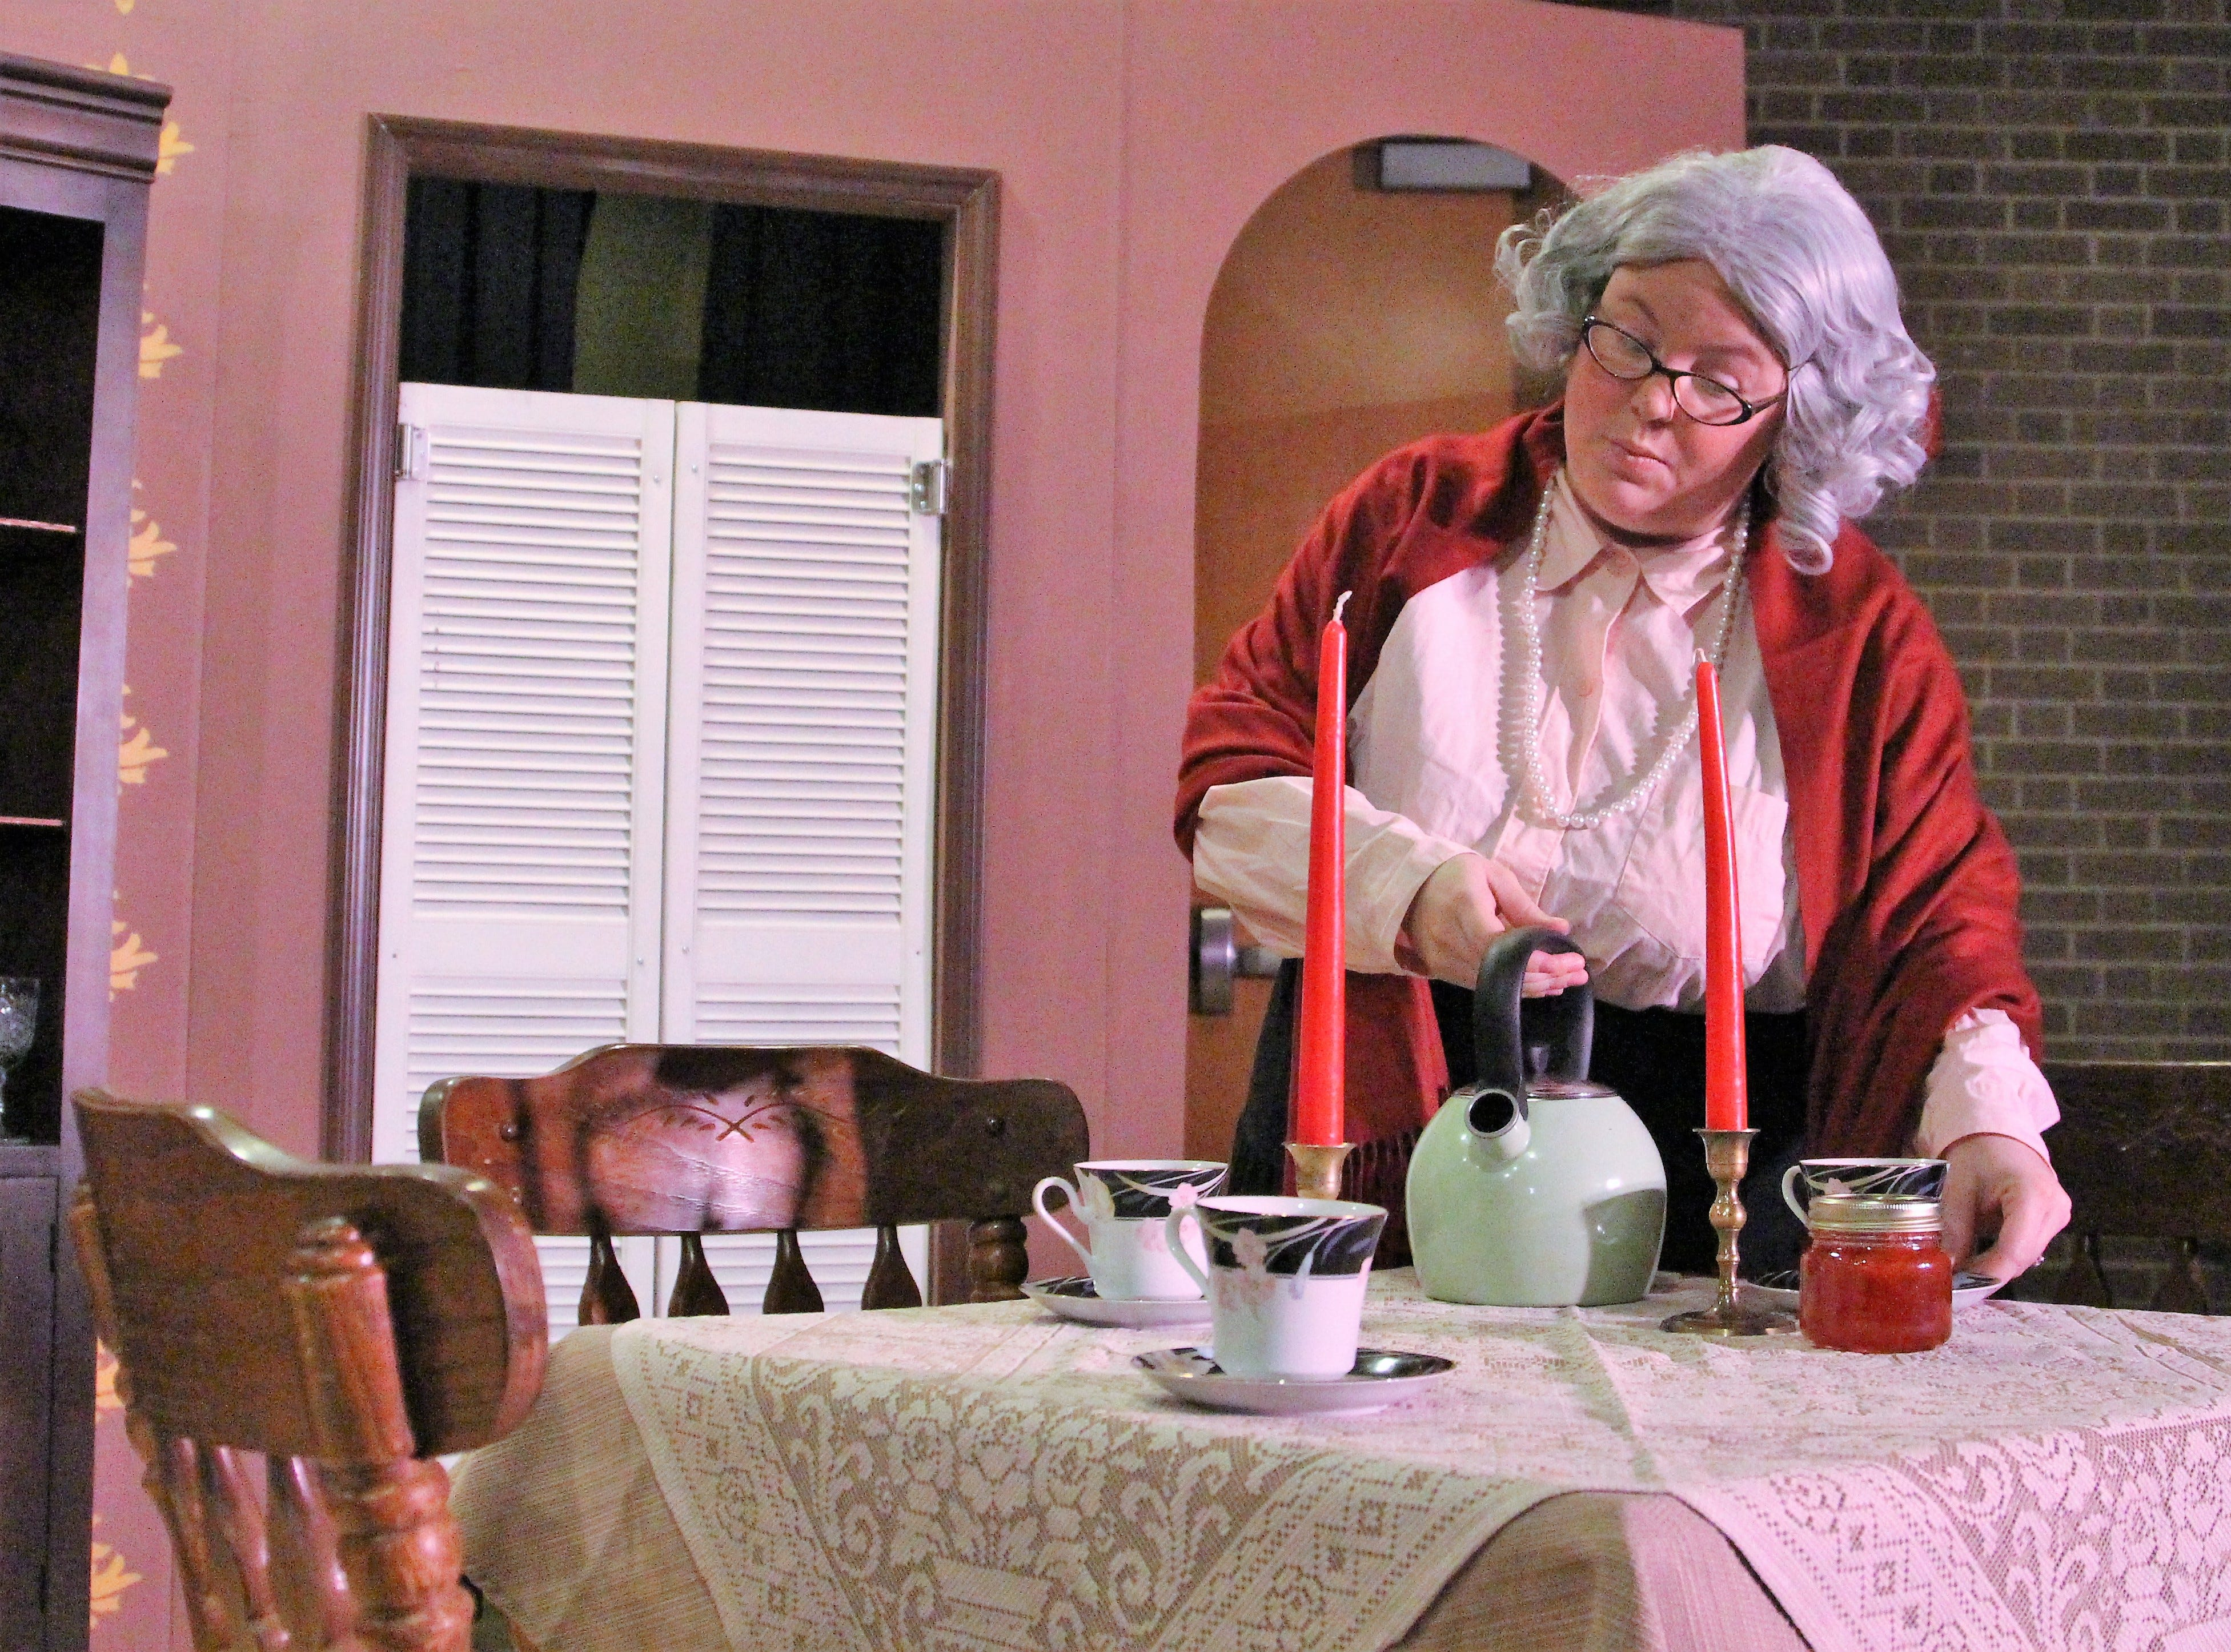 Spinster Martha Brewster, played by Amanda Ash, pours herself a cup of tea during a lively family conversation with her nephew Mortimer, a drama critic for  a New York newspaper. The student-led production at the Ohio State University at Marion follows the insane Brewster family who descended from the Mayflower settlers.